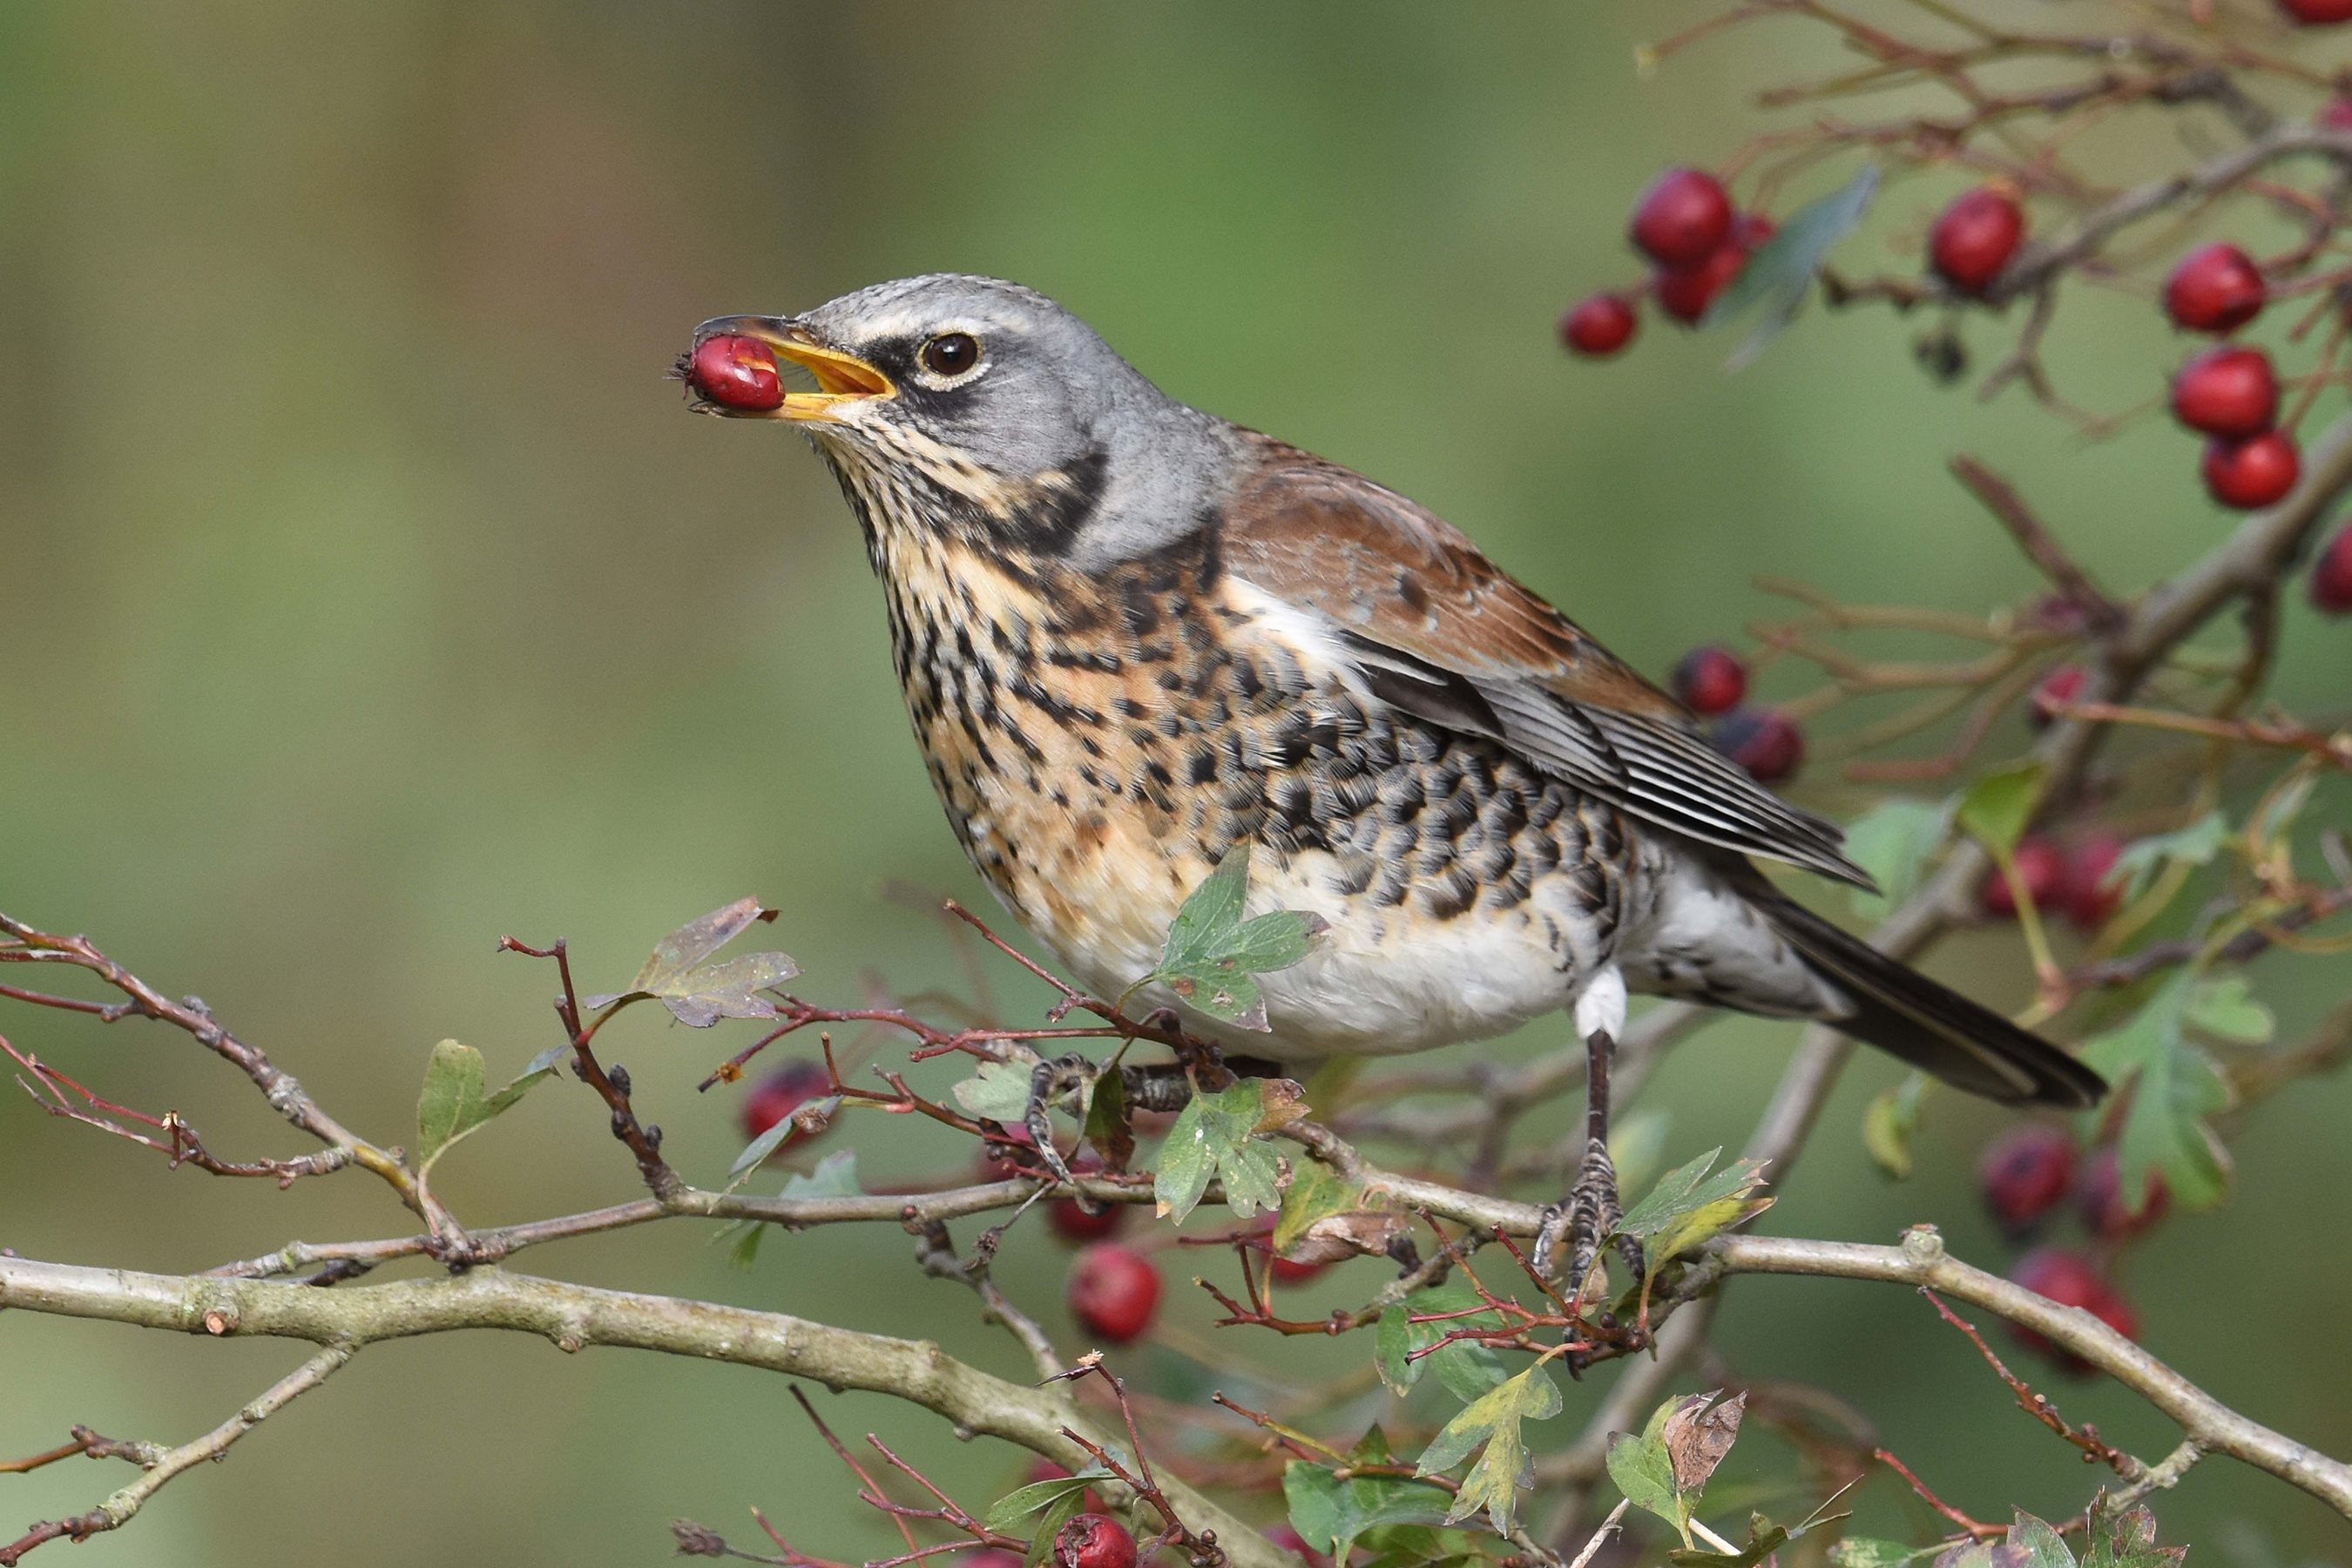 Fieldfare by Nick Appleton